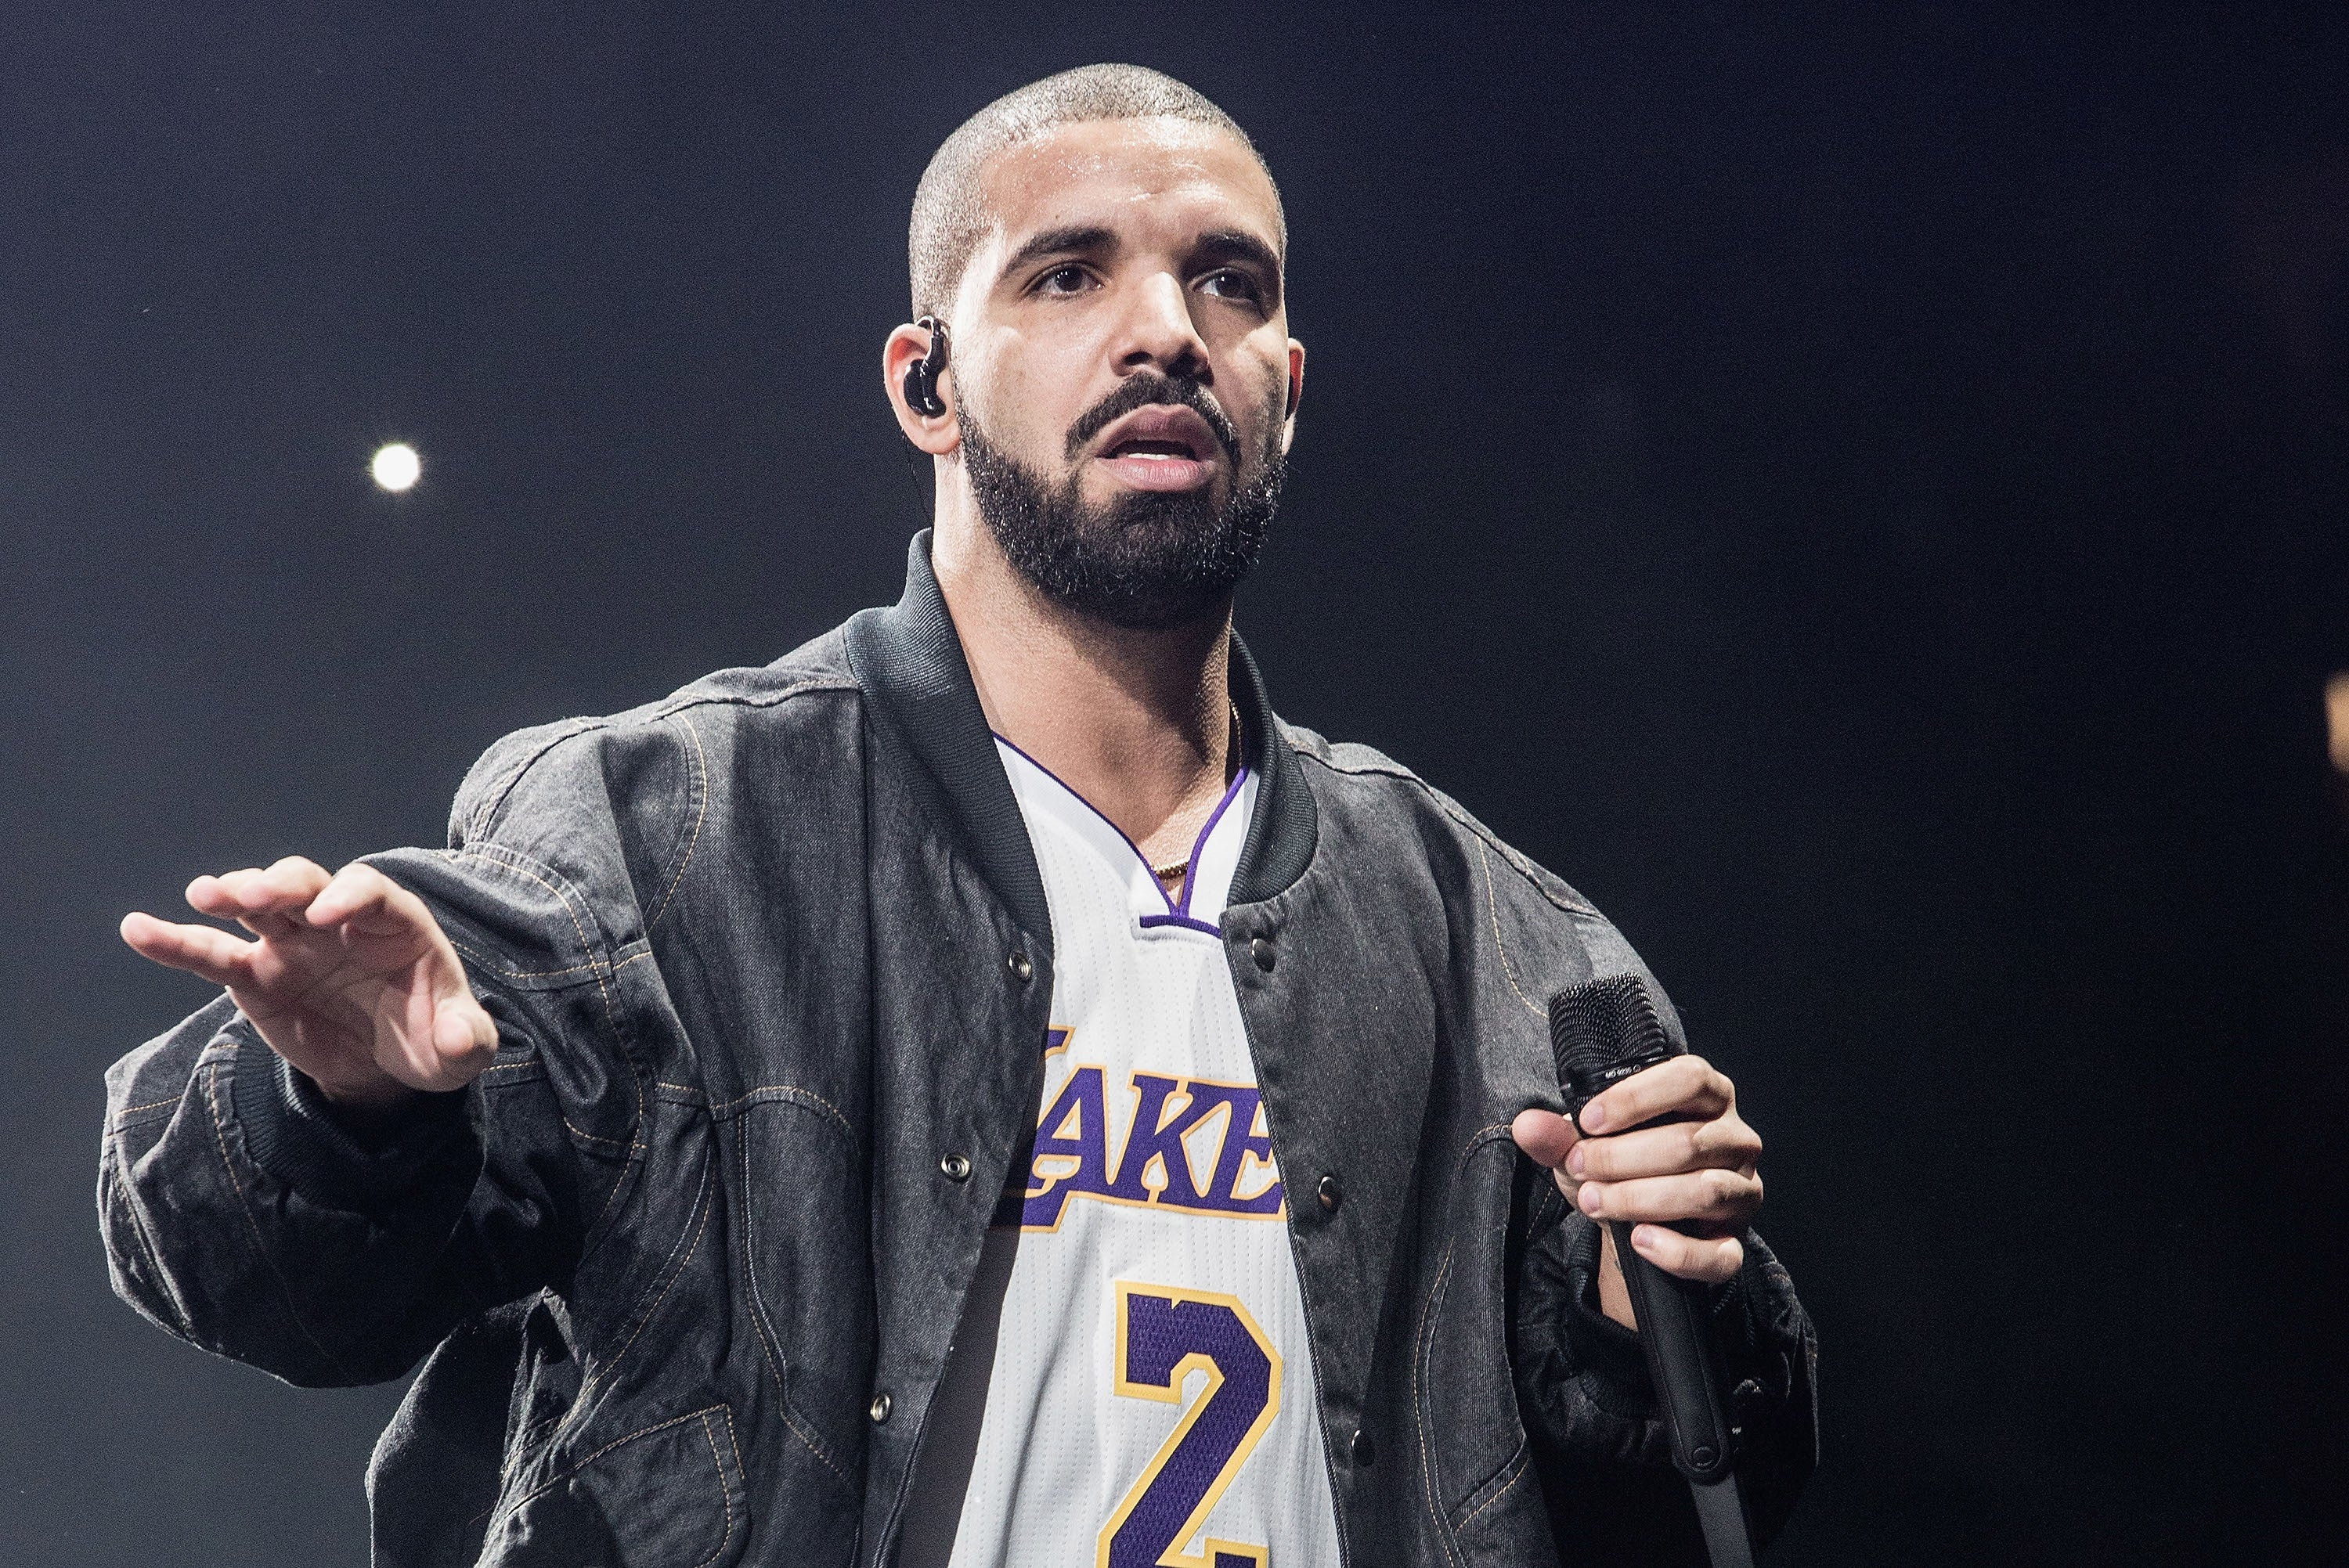 Watch Drake, Dave Chappelle, And Steph Curry Have A Meltdown As David Blaine Pukes Frogs